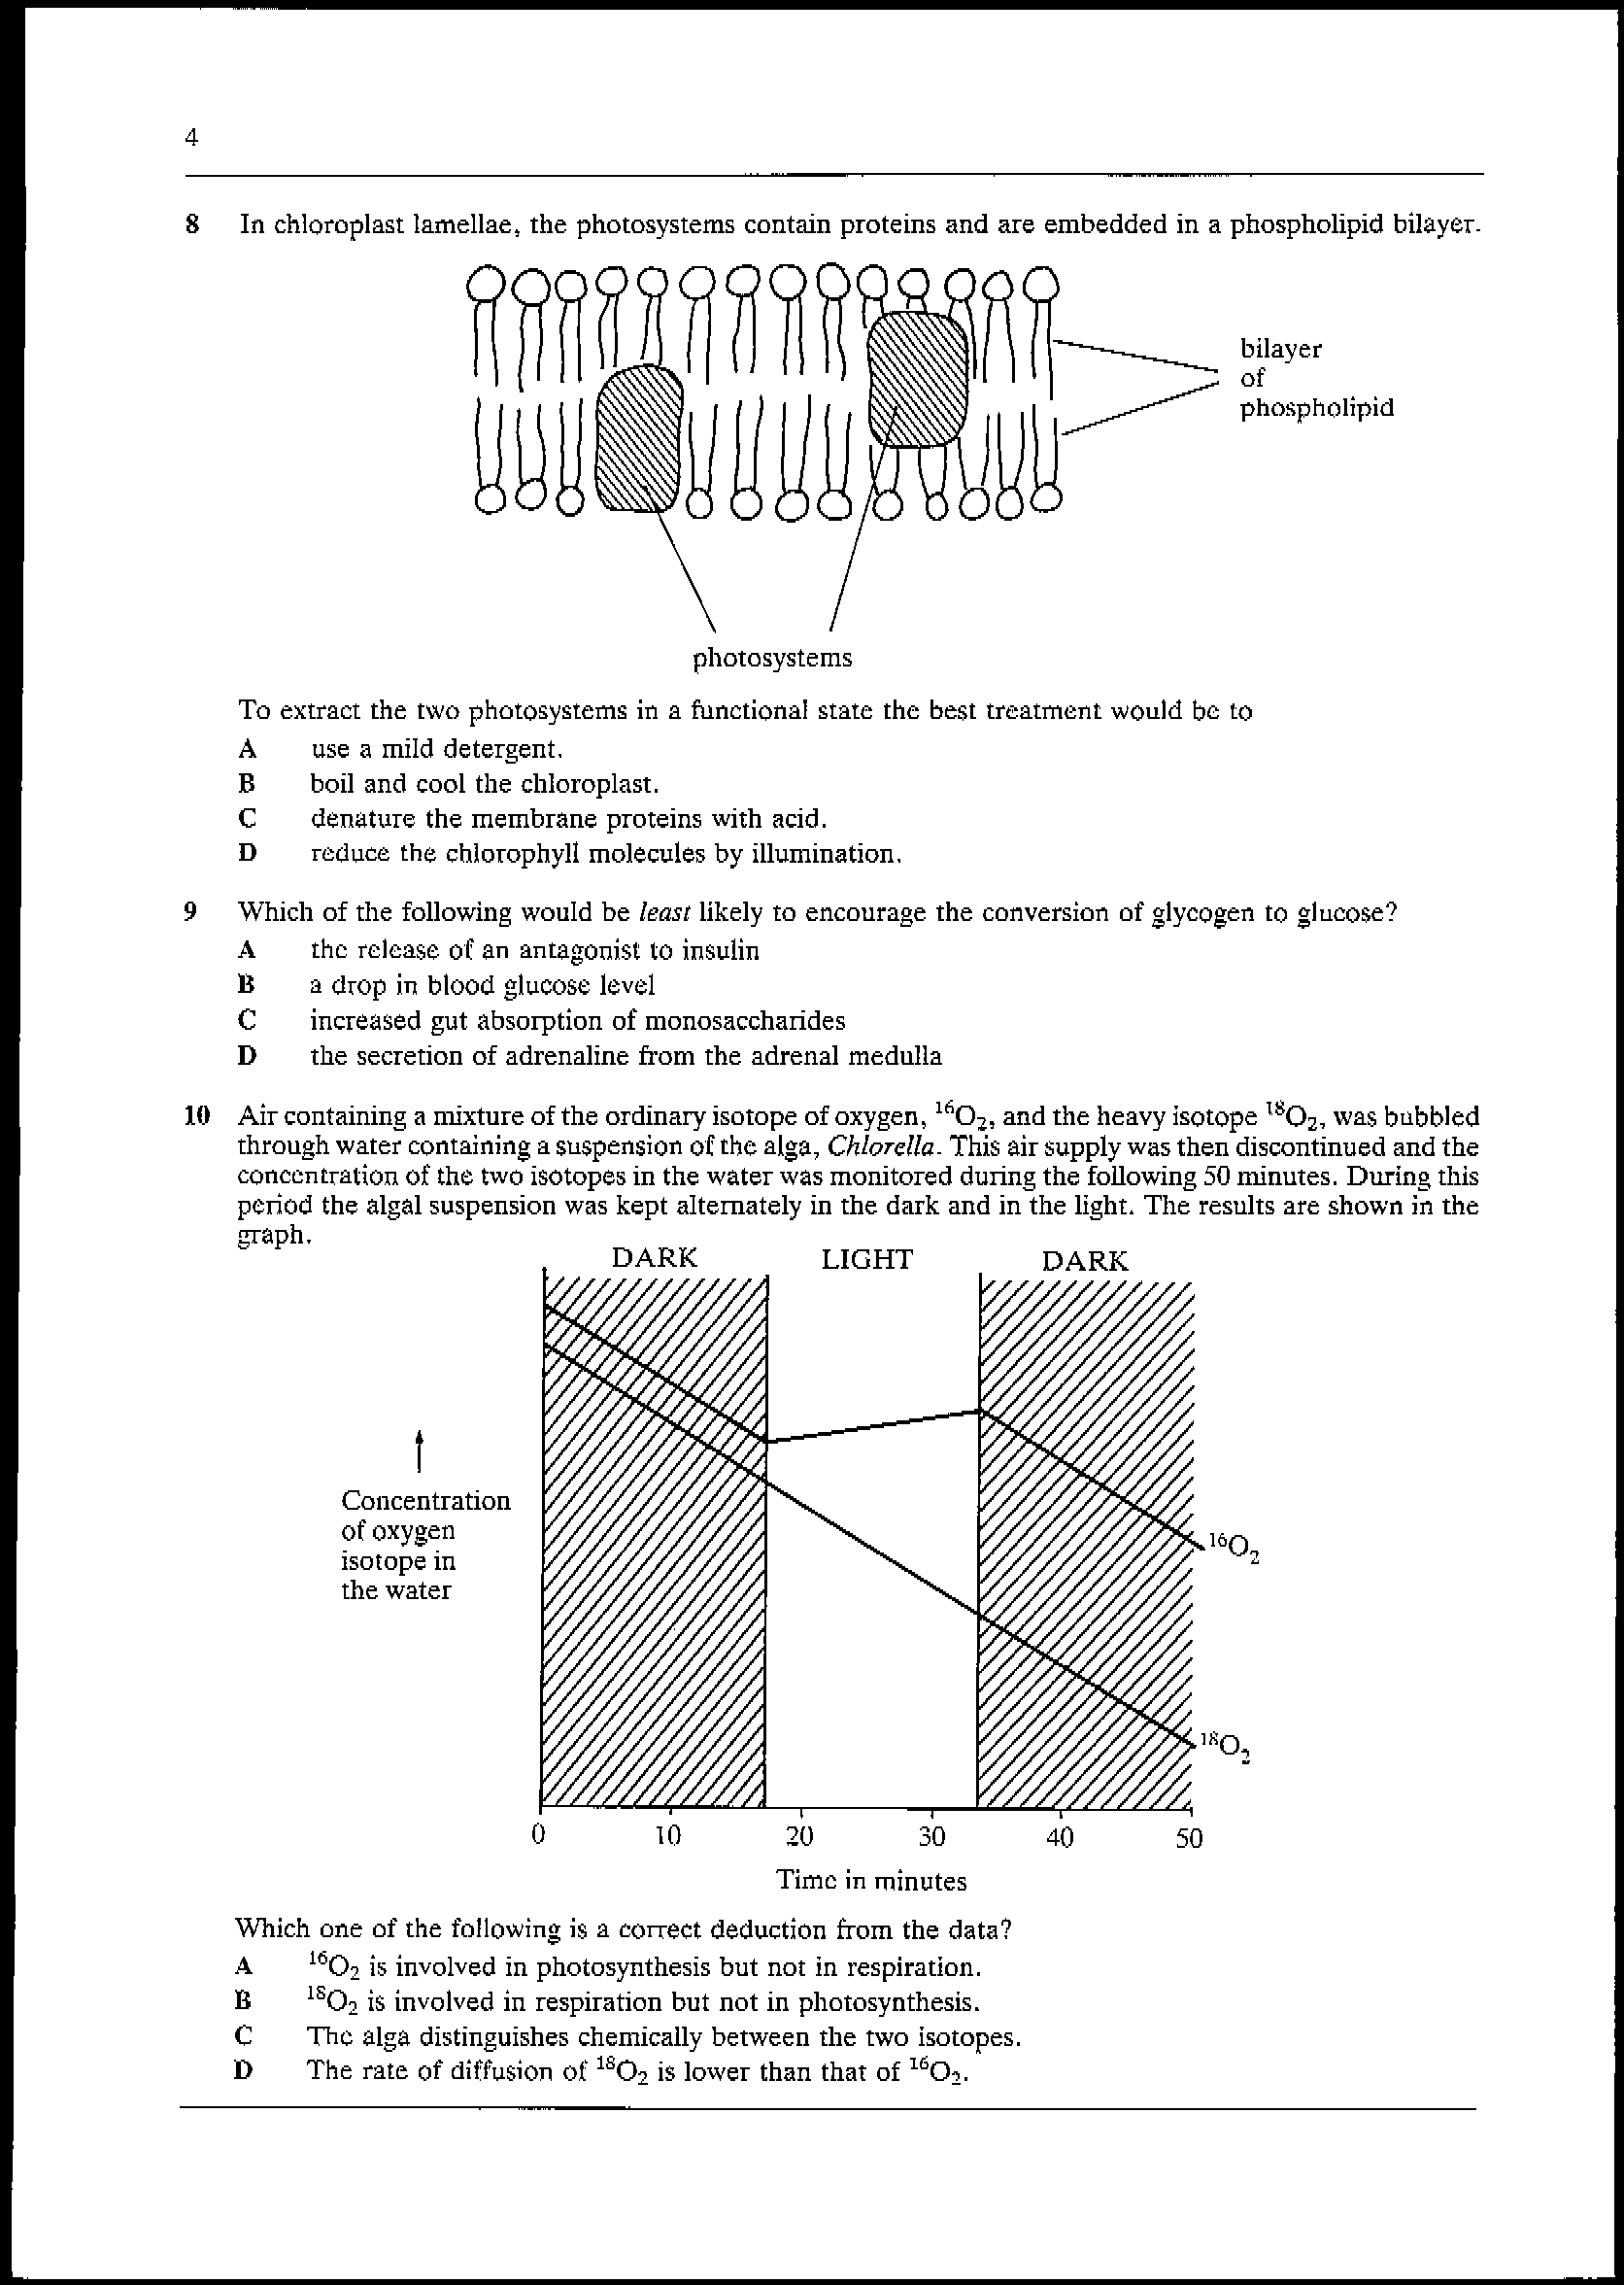 mc1991_Page_3.png